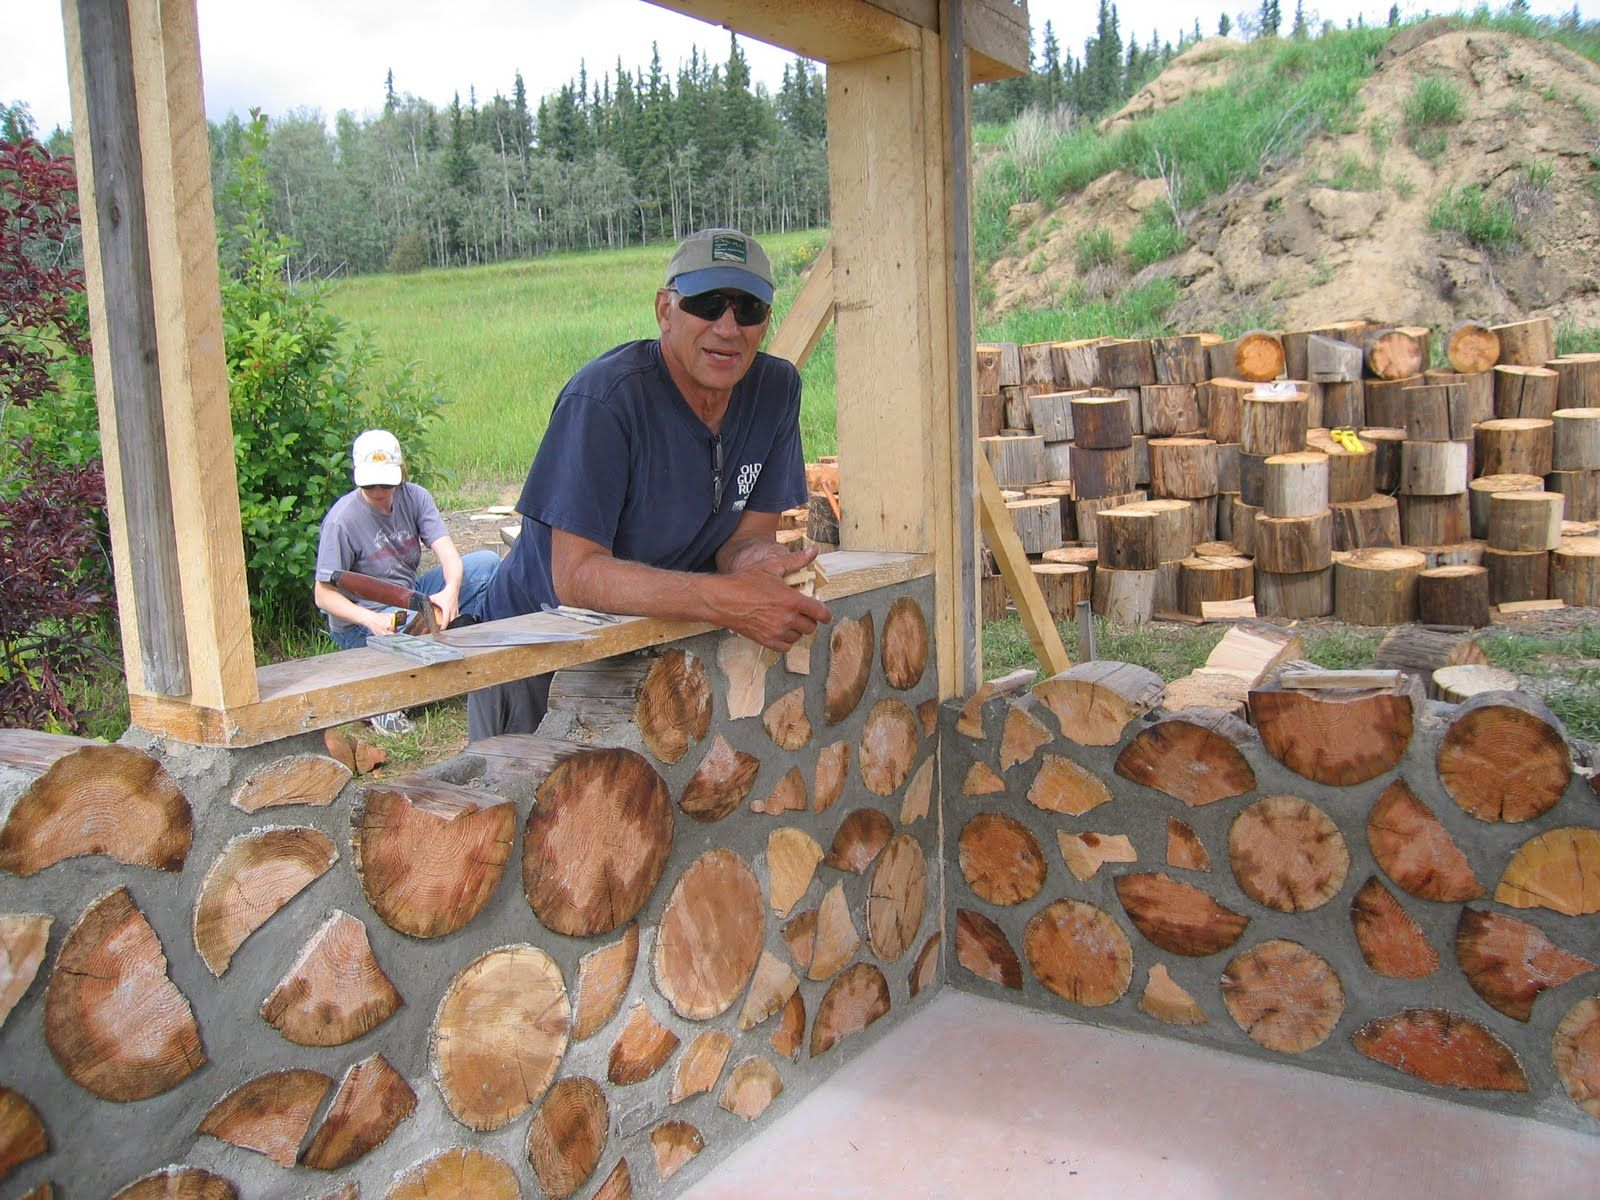 SNRAS Science U0026 News: Workshop Builds Cordwood Structure For GBG